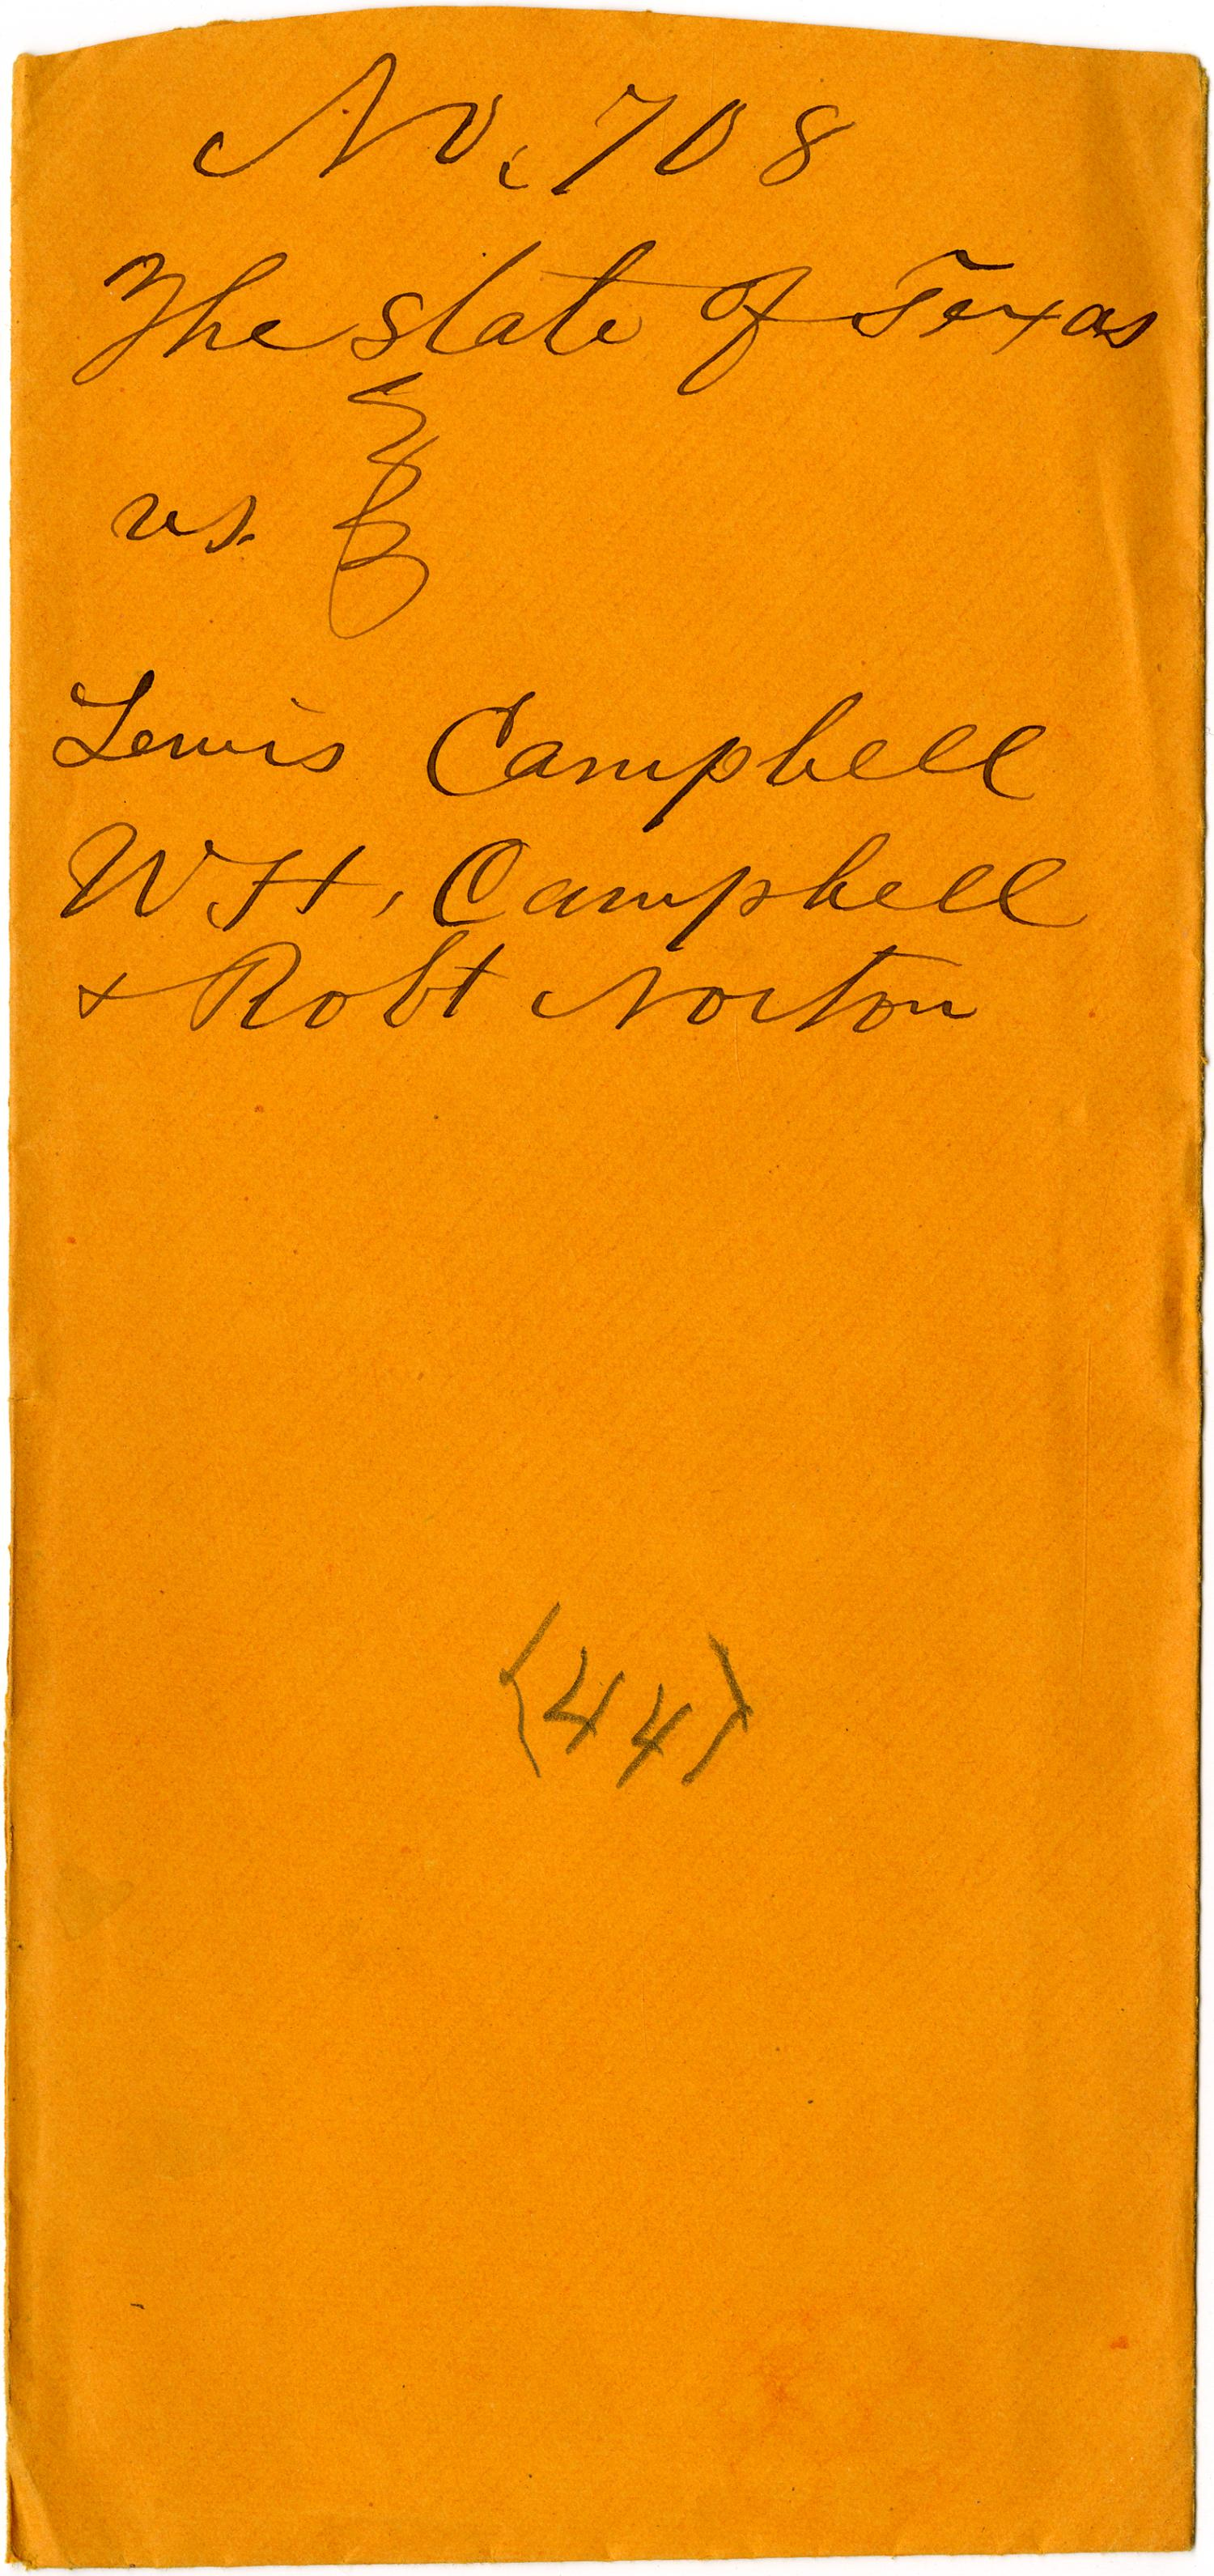 Documents related to the case of The State of Texas vs. Lewis Campbell, principal, W. H. Campbell, and Robert Norton, securities, cause no. 708a, 1872                                                                                                      [Sequence #]: 1 of 4